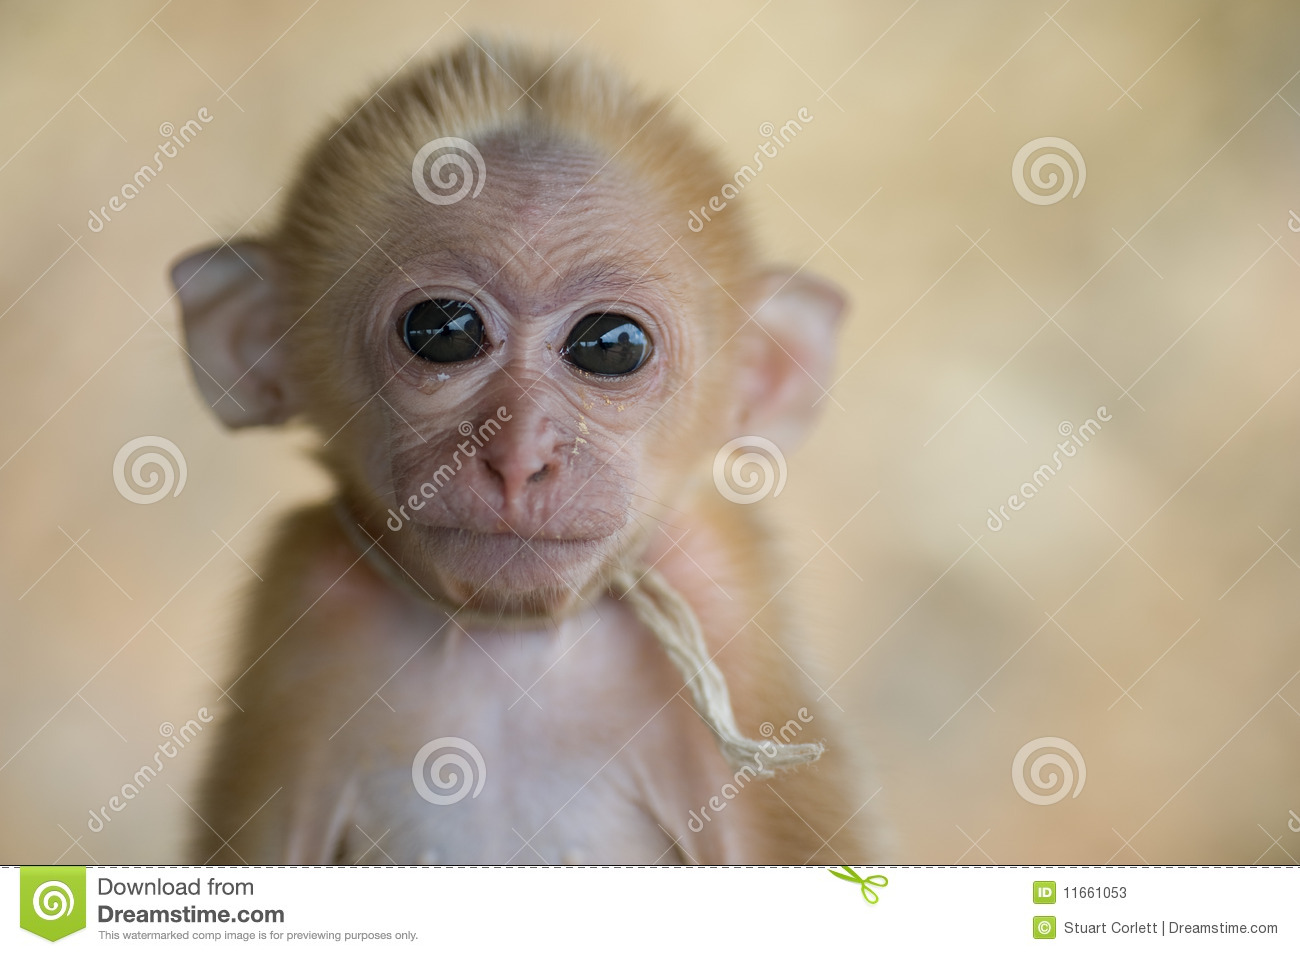 My Monkey Stock Photos - Image: 11661053